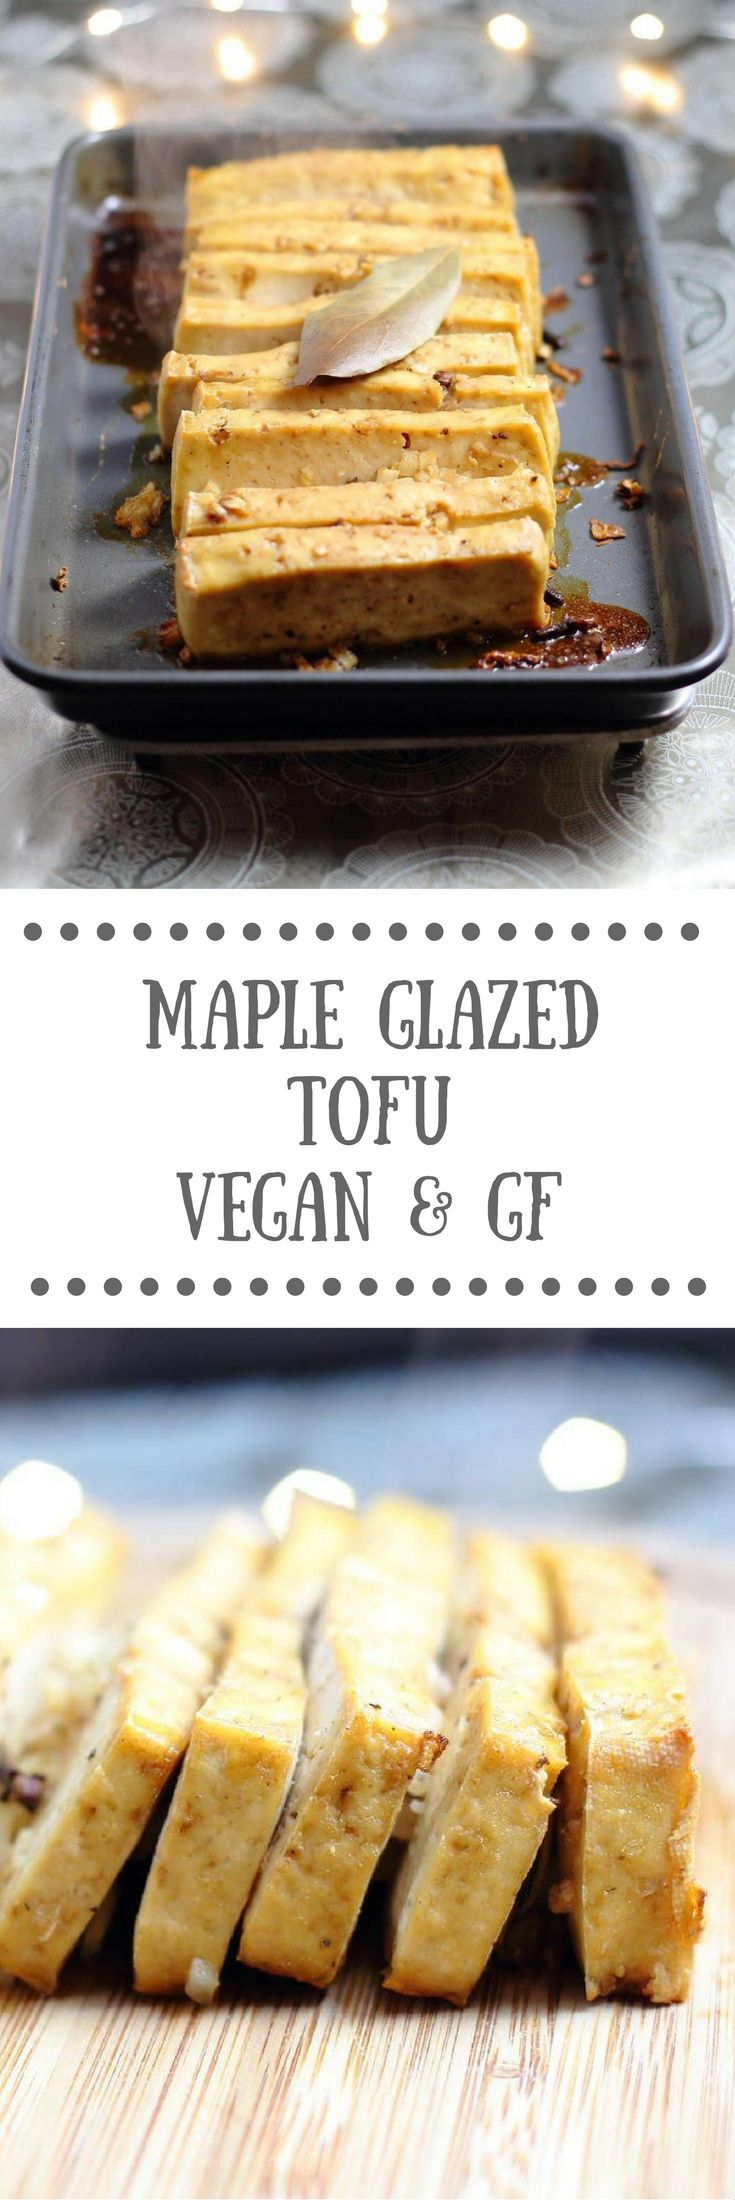 Maple Glazed Tofu - Vegan & Gluten-free Recipe | Perfect for a festive veggie Christmas feast.